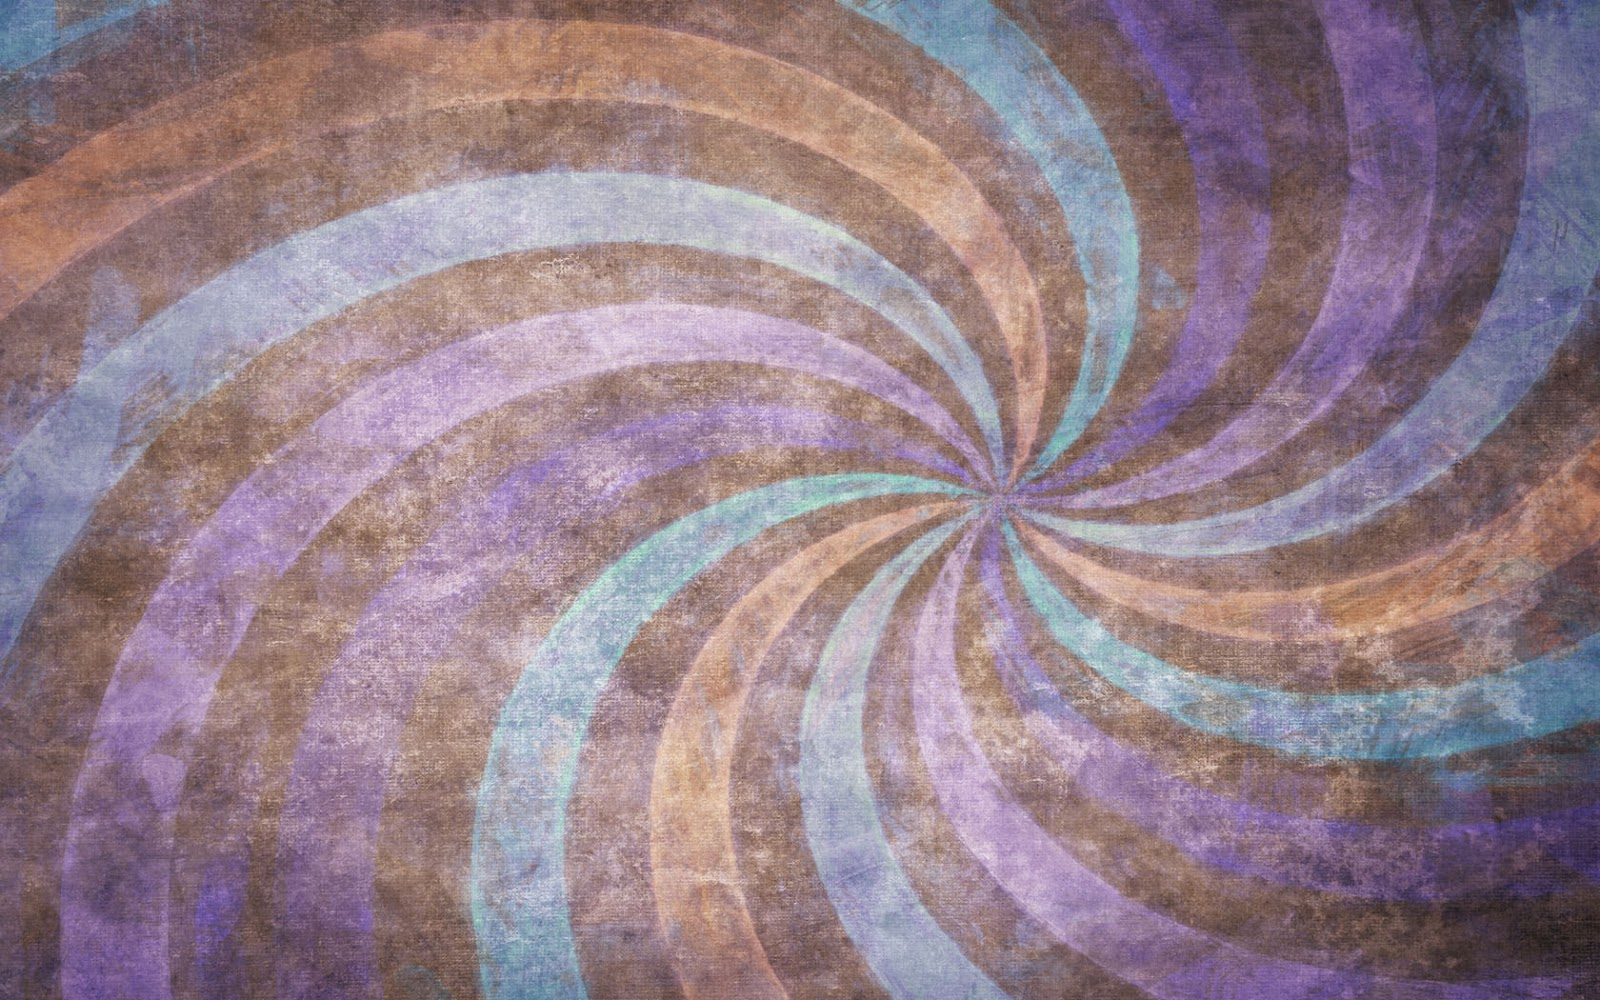 Tumblr Spiral Backgrounds 60463